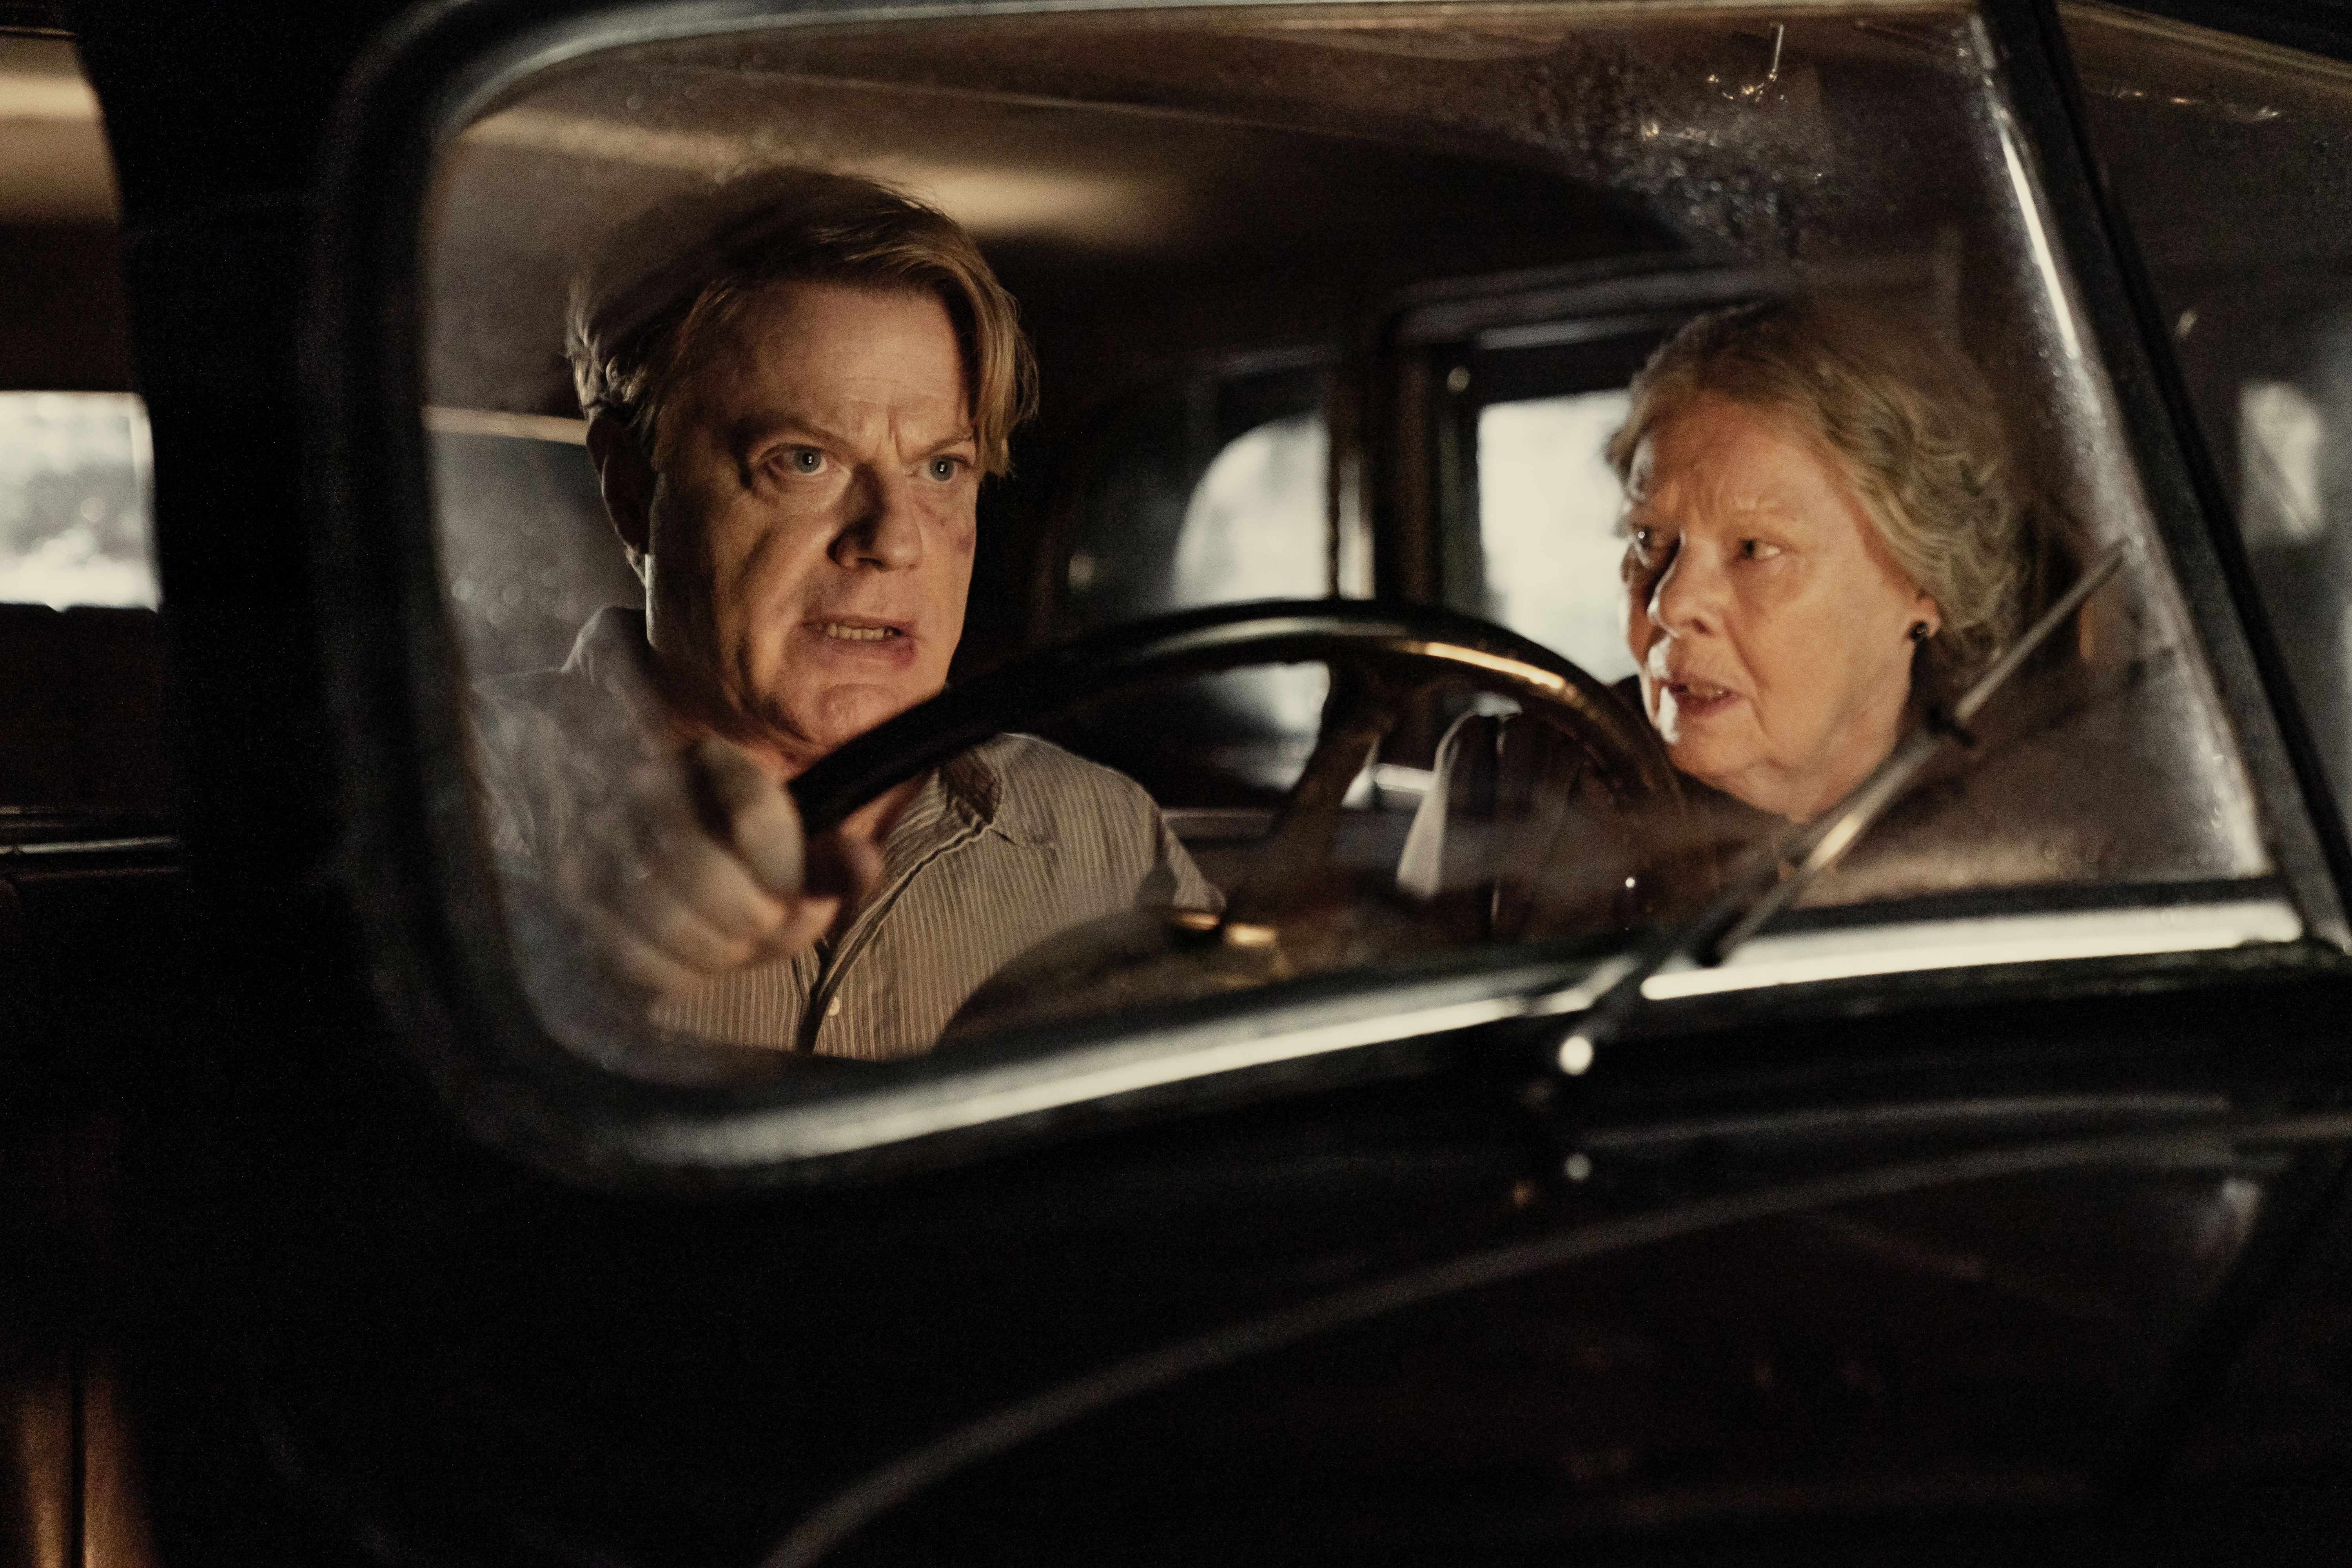 Eddie Izzard and Judi Dench in 'Six Minutes to Midnight'